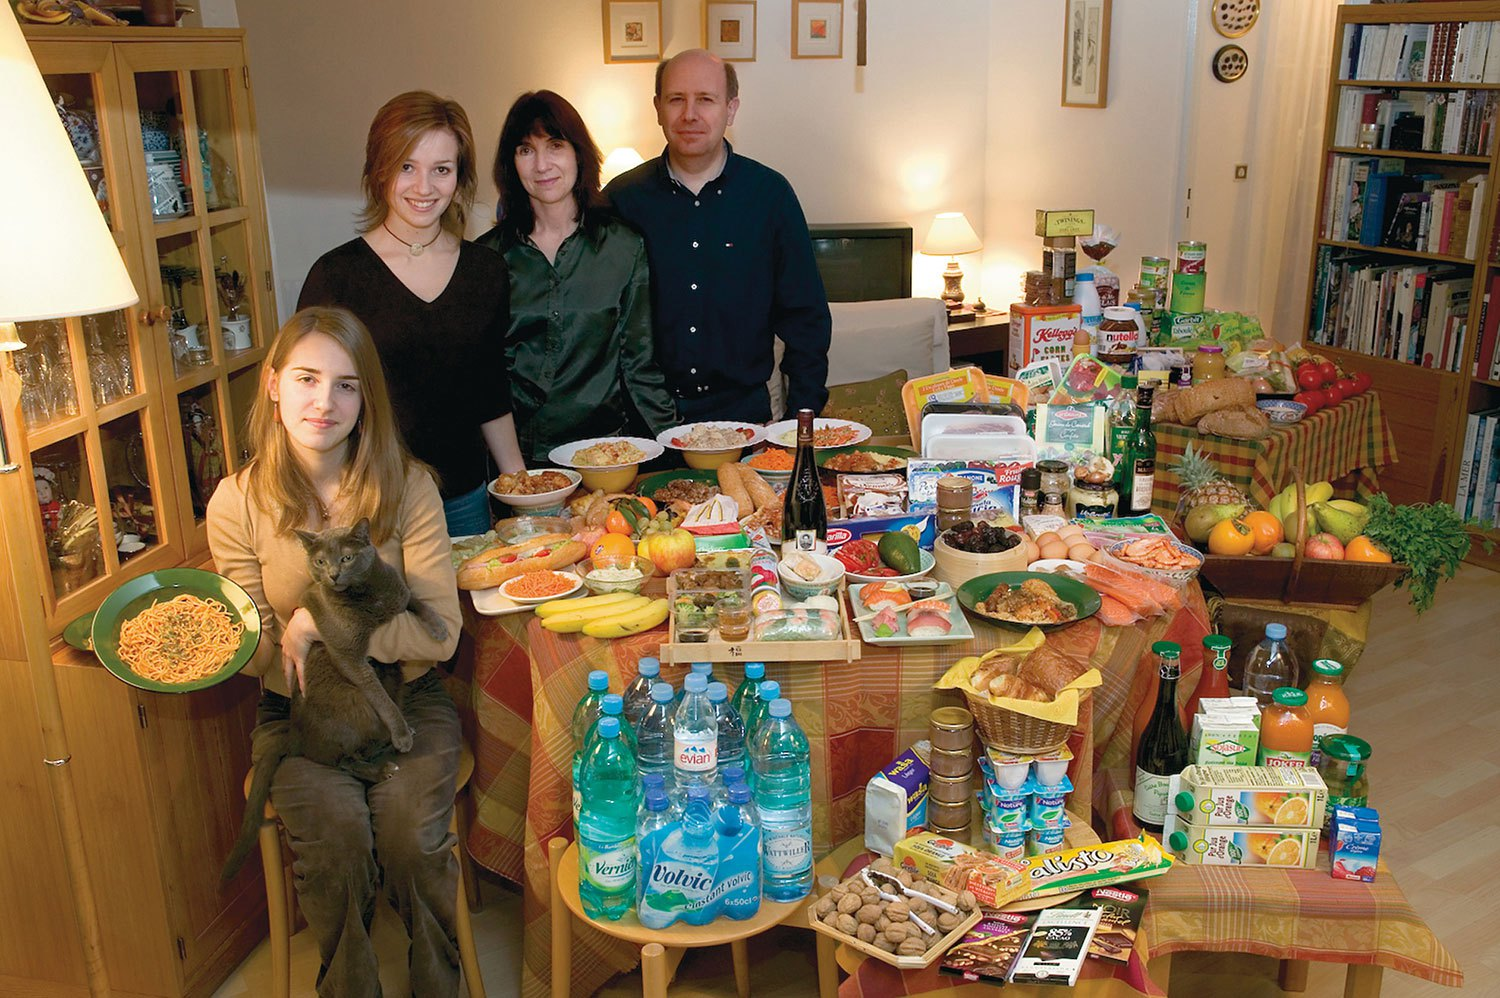 France: The Le Moines of Montreuil - Food expenditure for one week: 315.17 euros or $419.95. Favorite Foods: Delphine Le Moine's Apricot Tarts, pasta carbonara, Thai food.